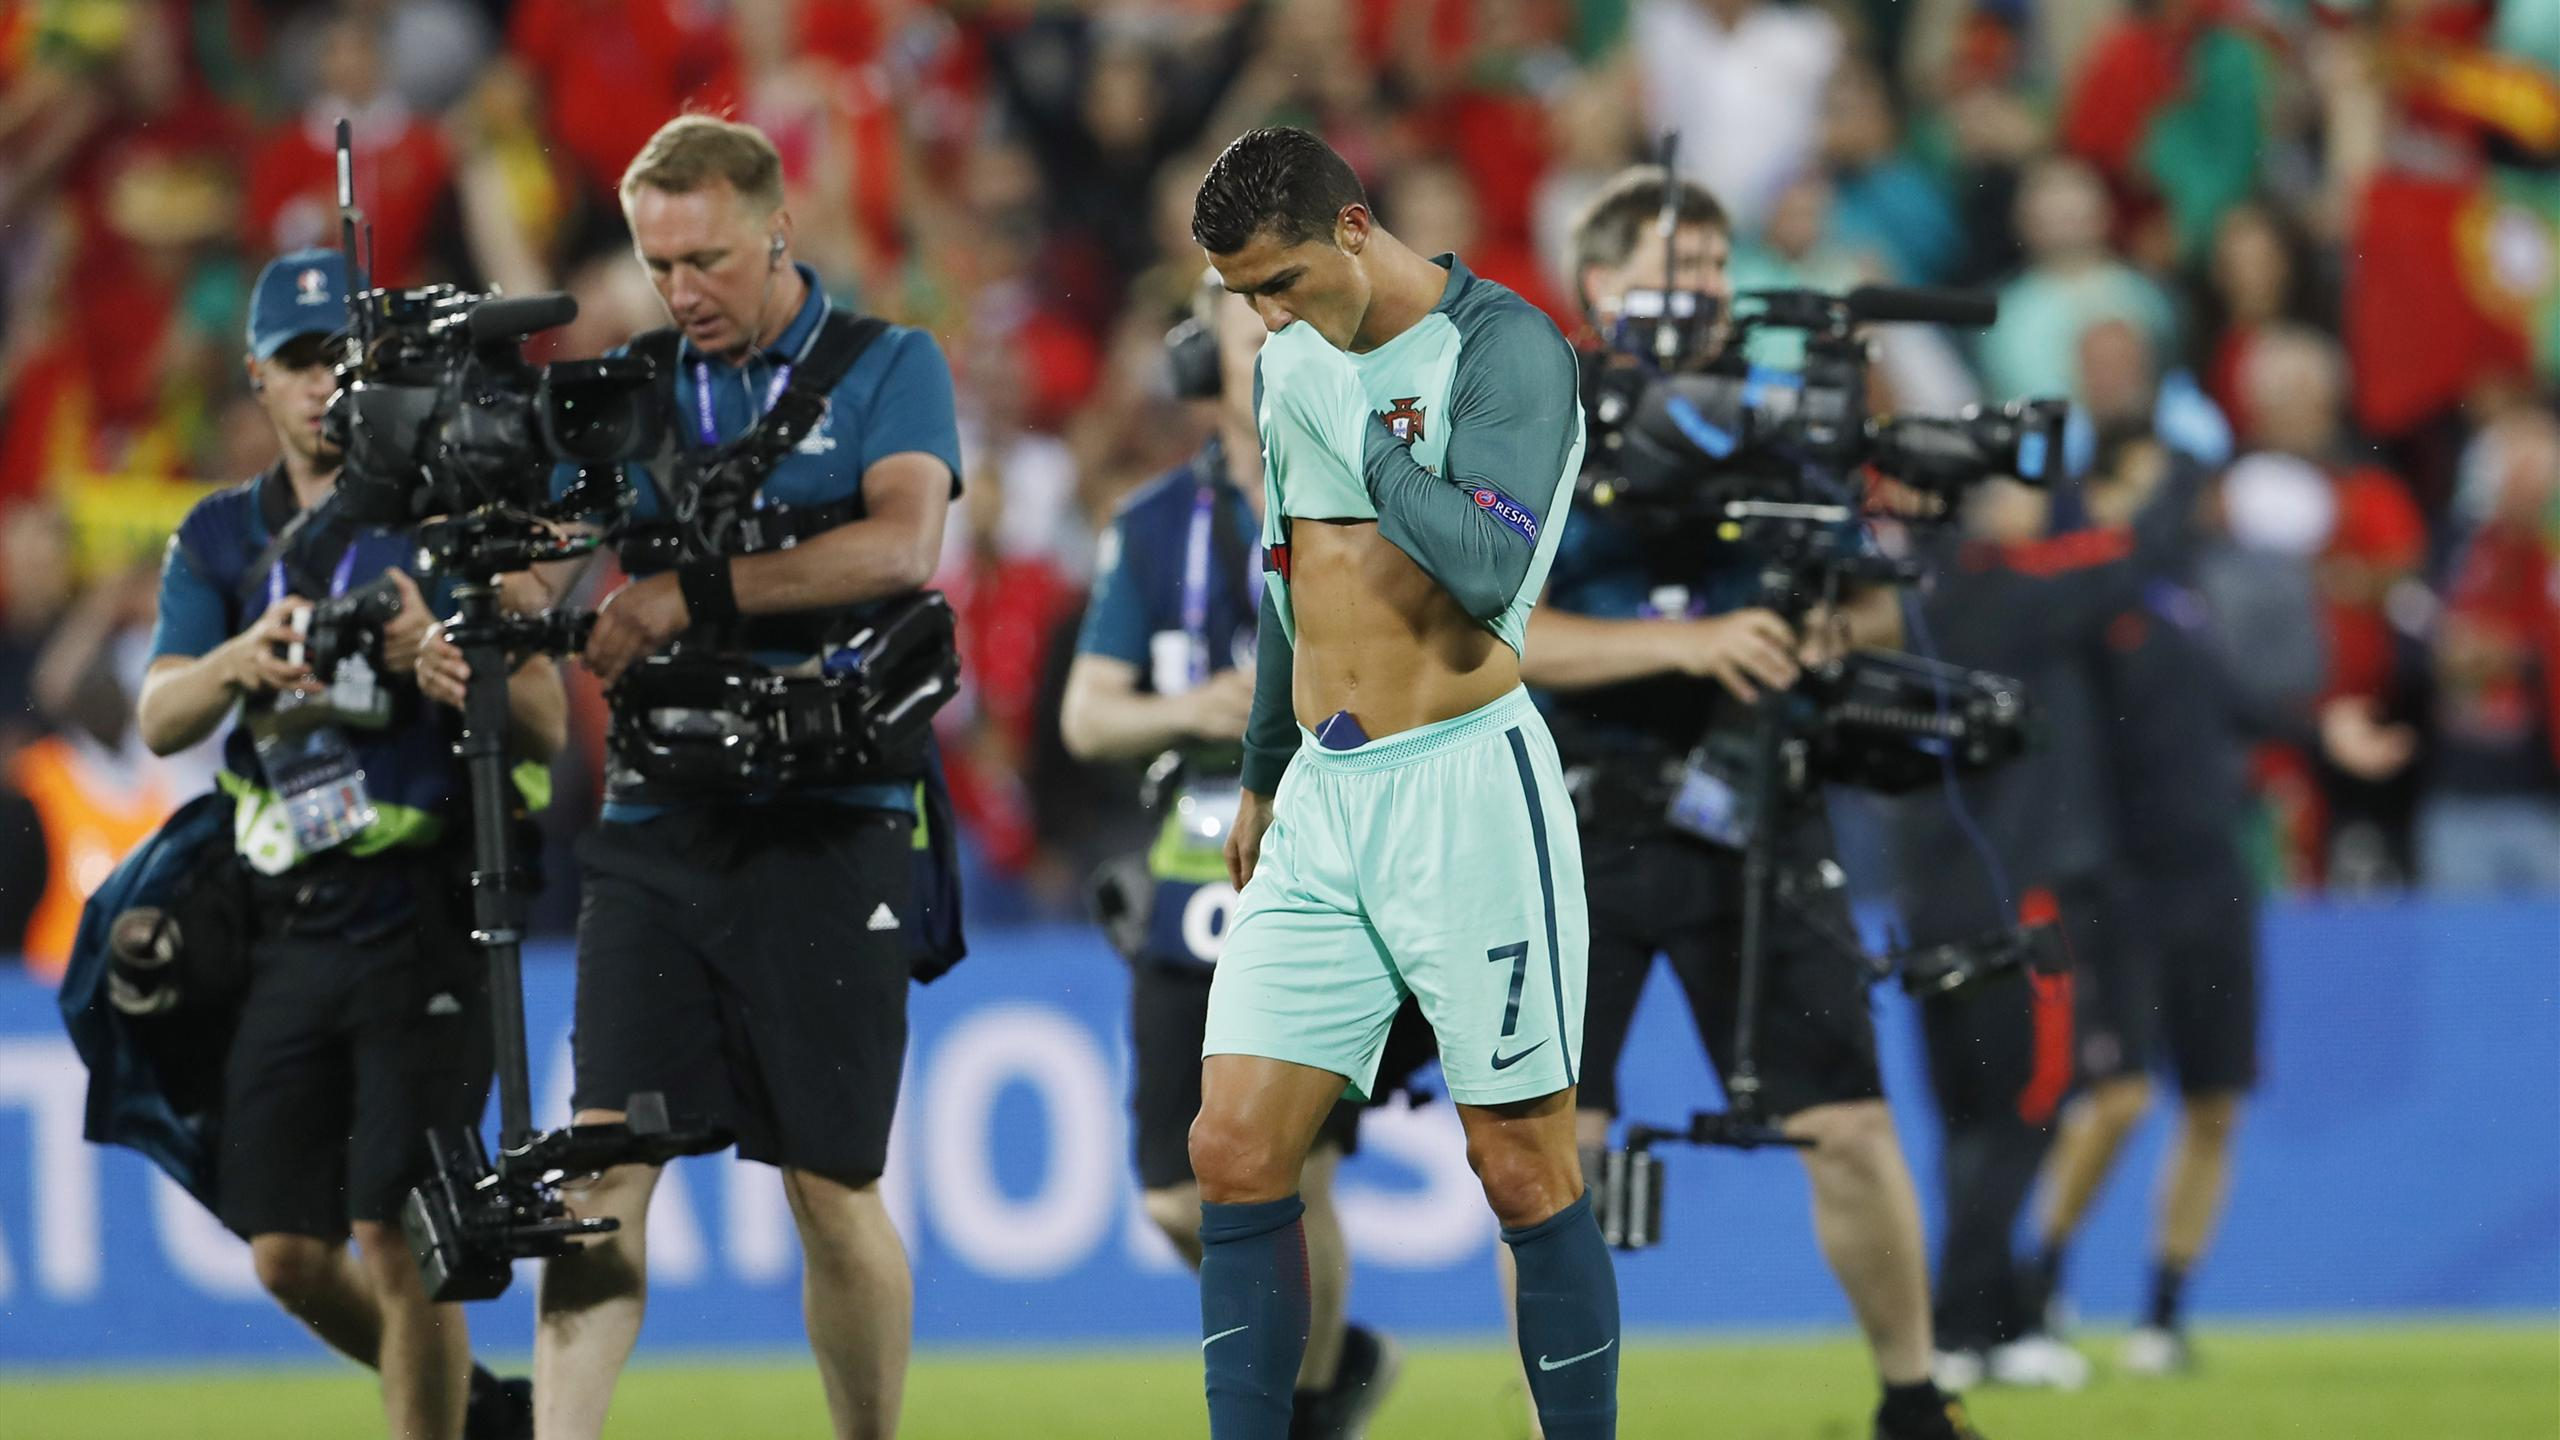 Portugal's Cristiano Ronaldo celebrates in a muted fashion after the win over Croatia at Euro 2016